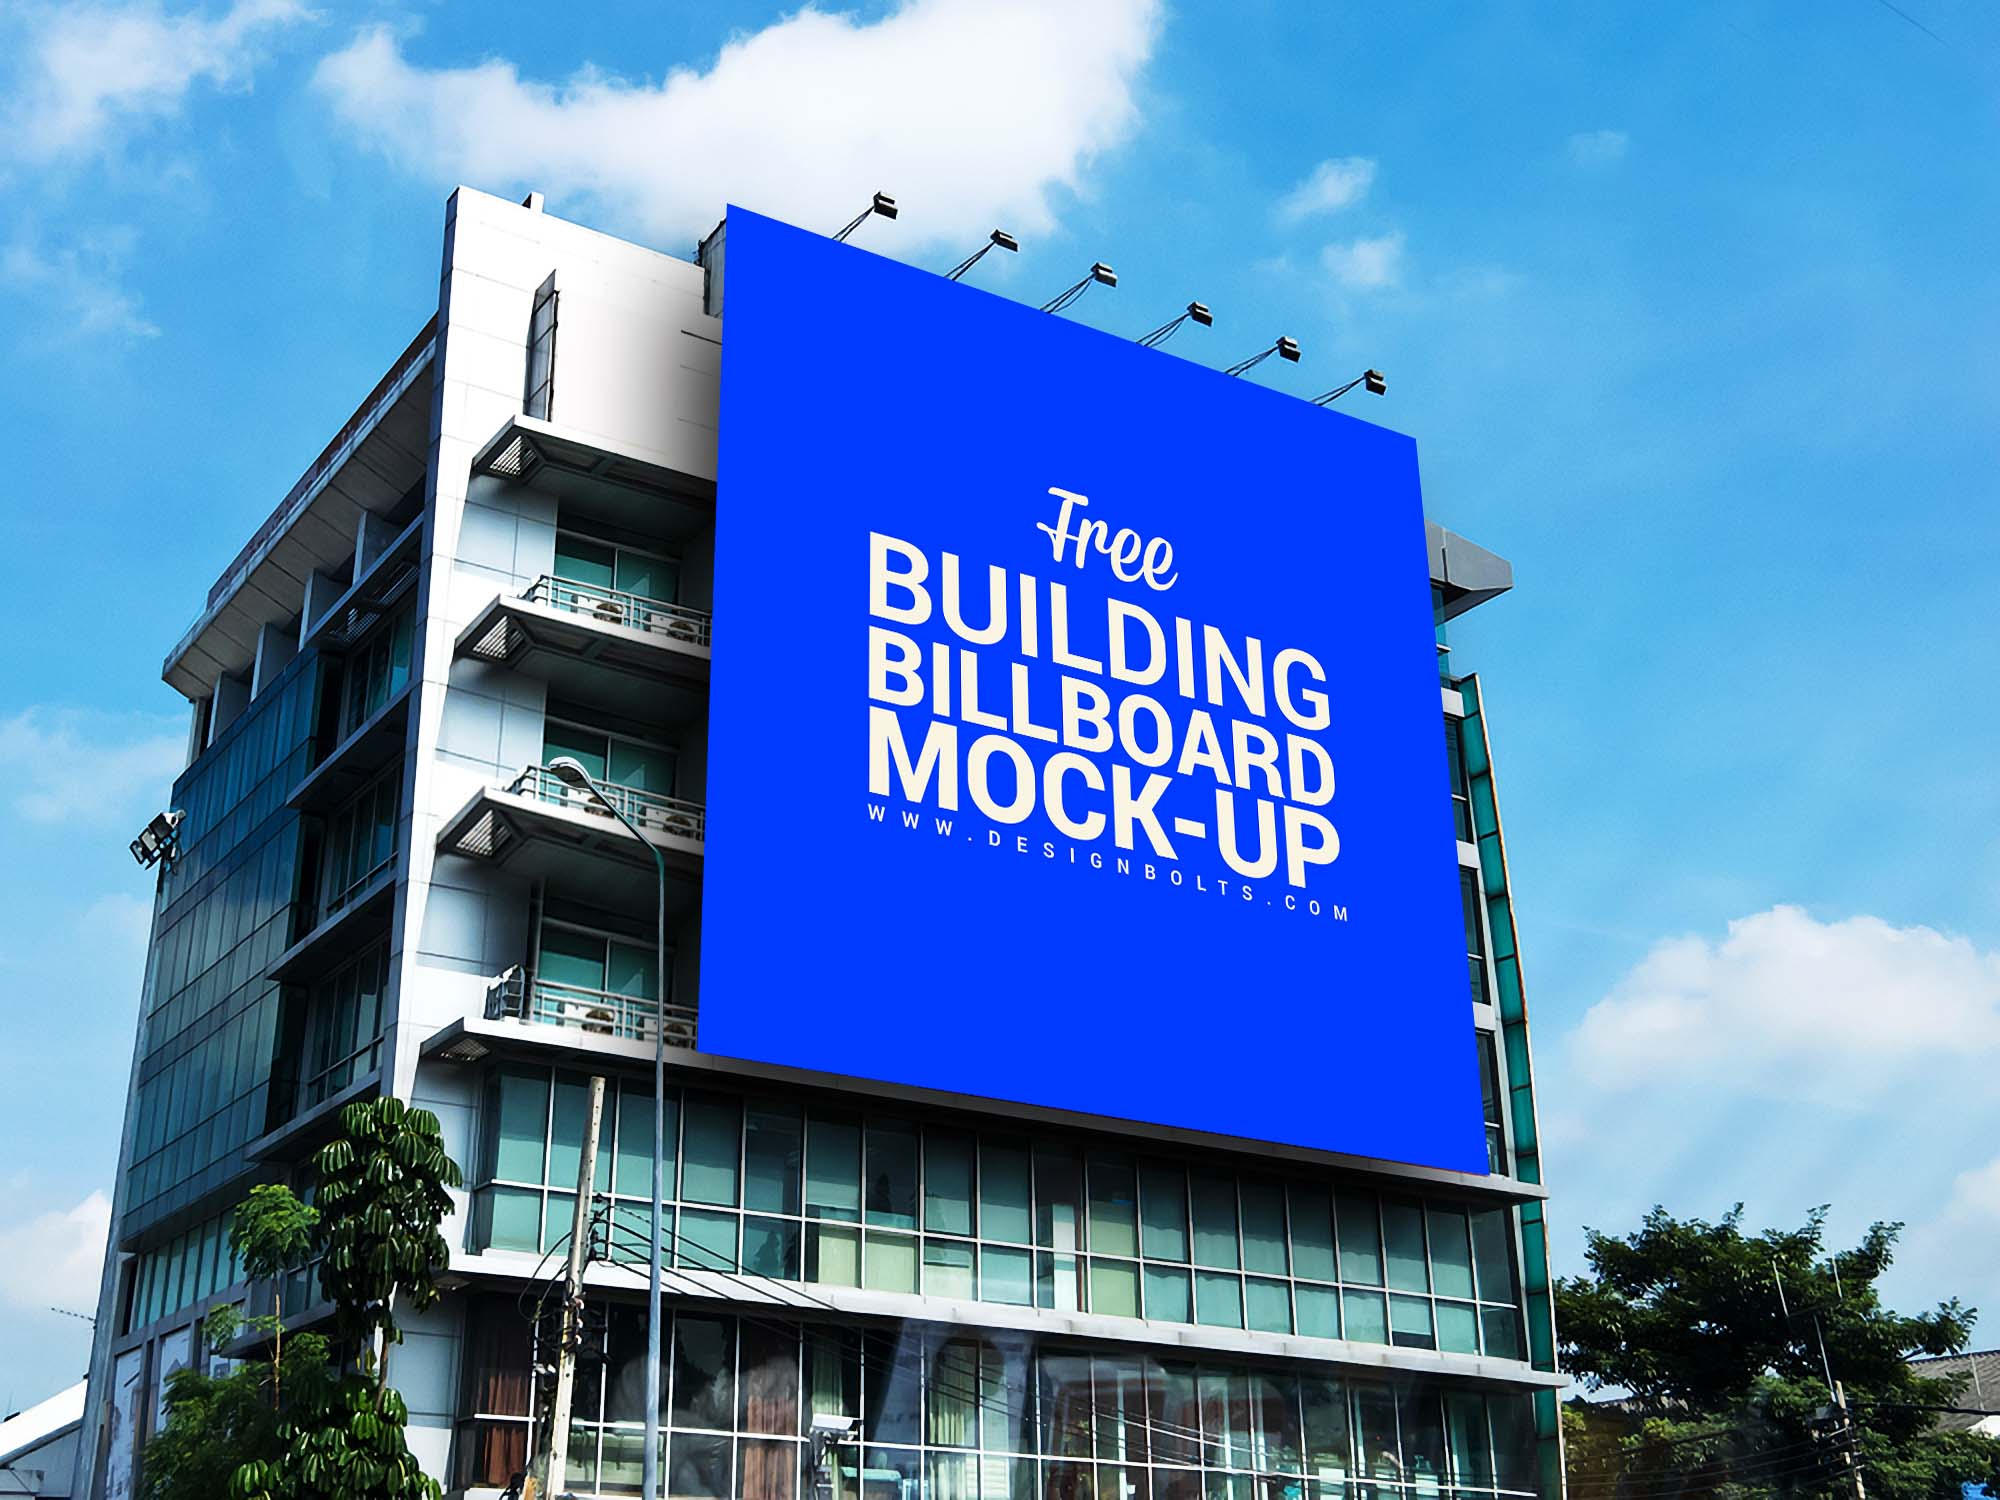 Outdoor Advertisement Building Billboard Mockup 2